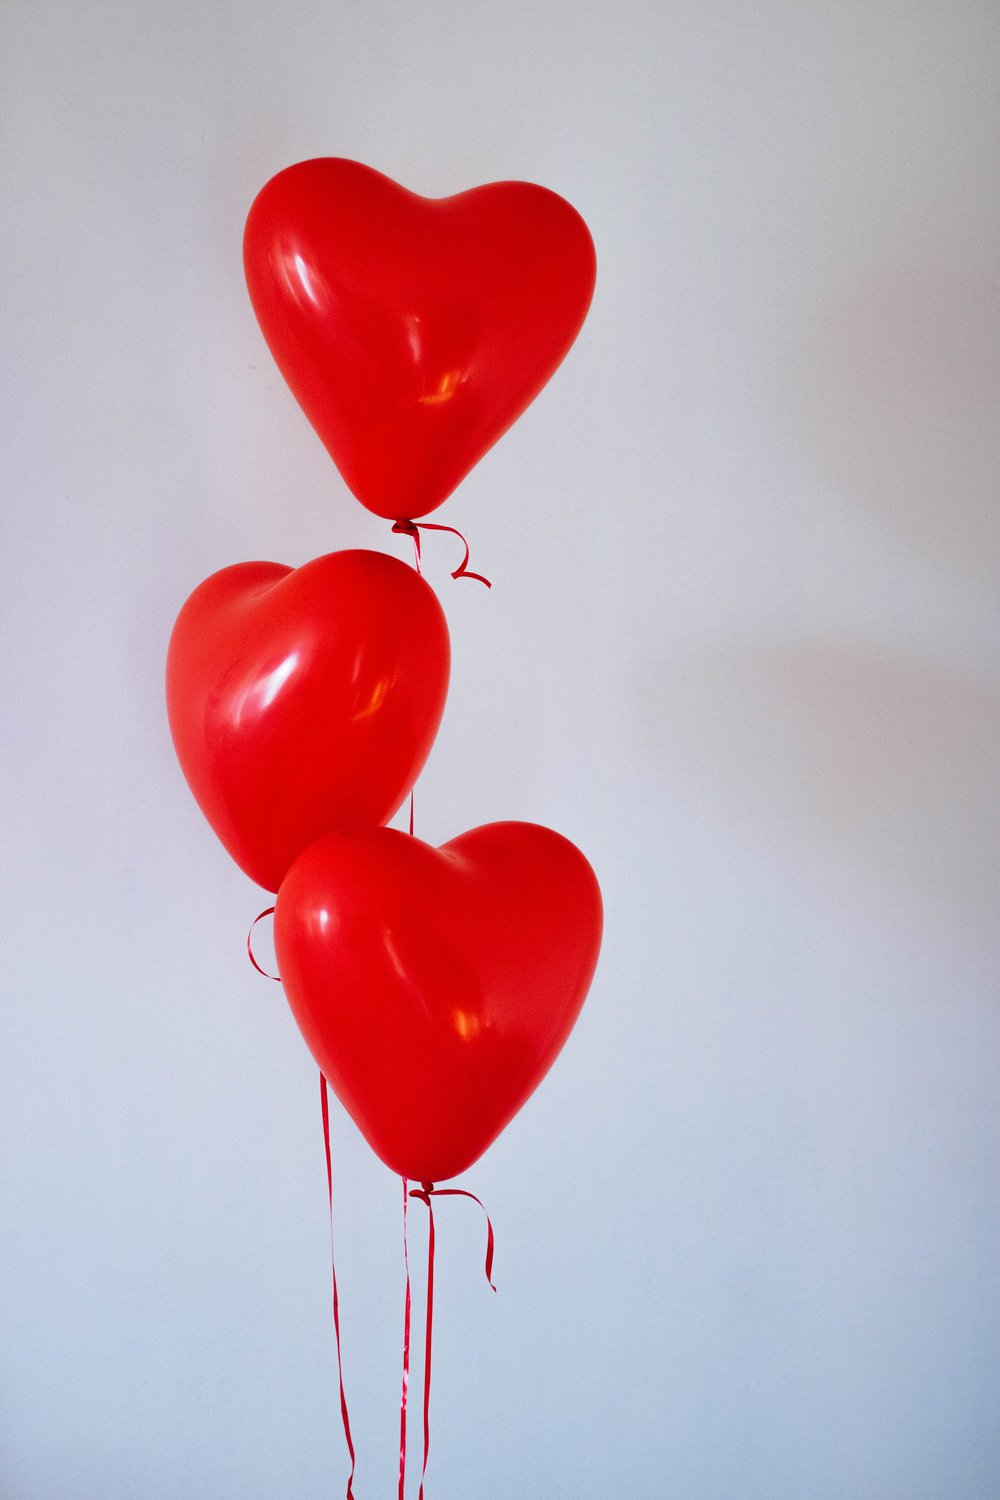 art-balloon-color-704748.jpg